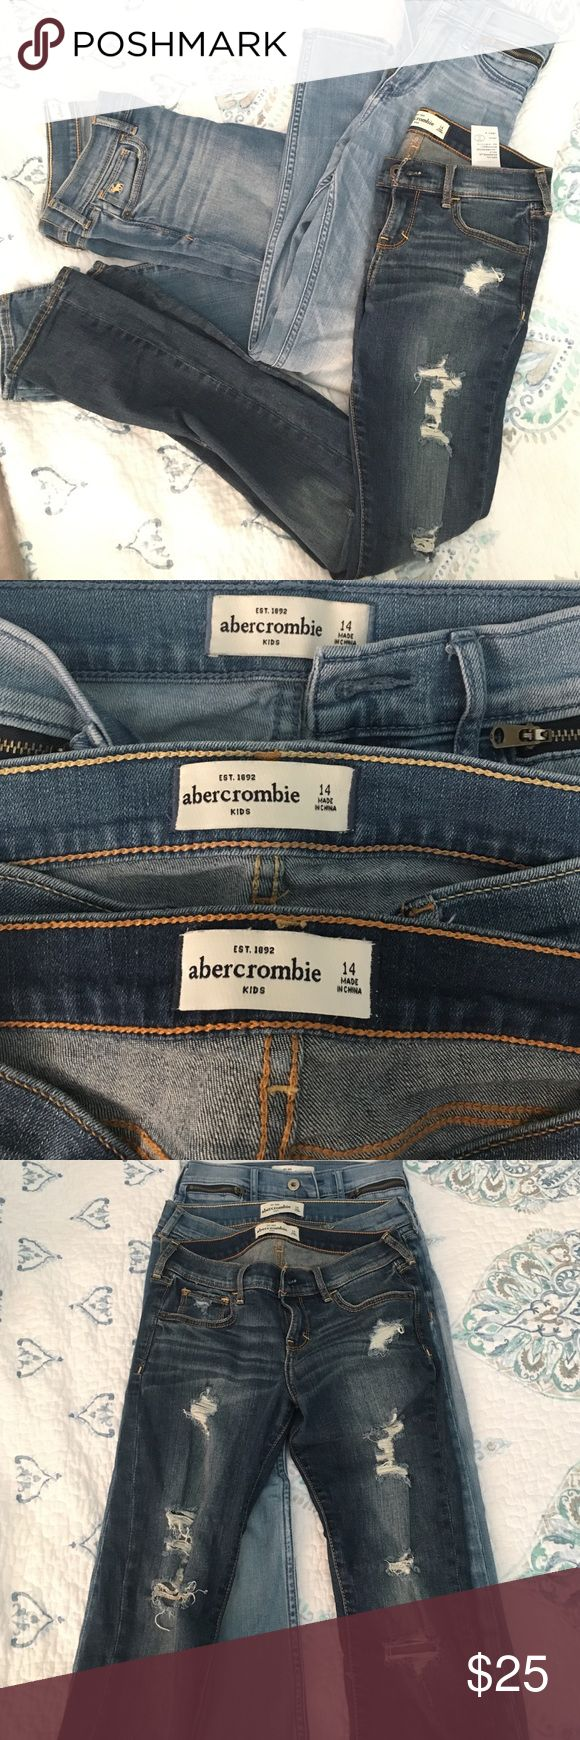 Abercrombie Girls Jeans Good condition, she grew out of them, one pair with the zippers on the pockets have a VERY small red spot on them on right leg nothing to make you not want them. Selling all together to get ride of them fast. Straight/skinny style abercrombie kids Bottoms Jeans